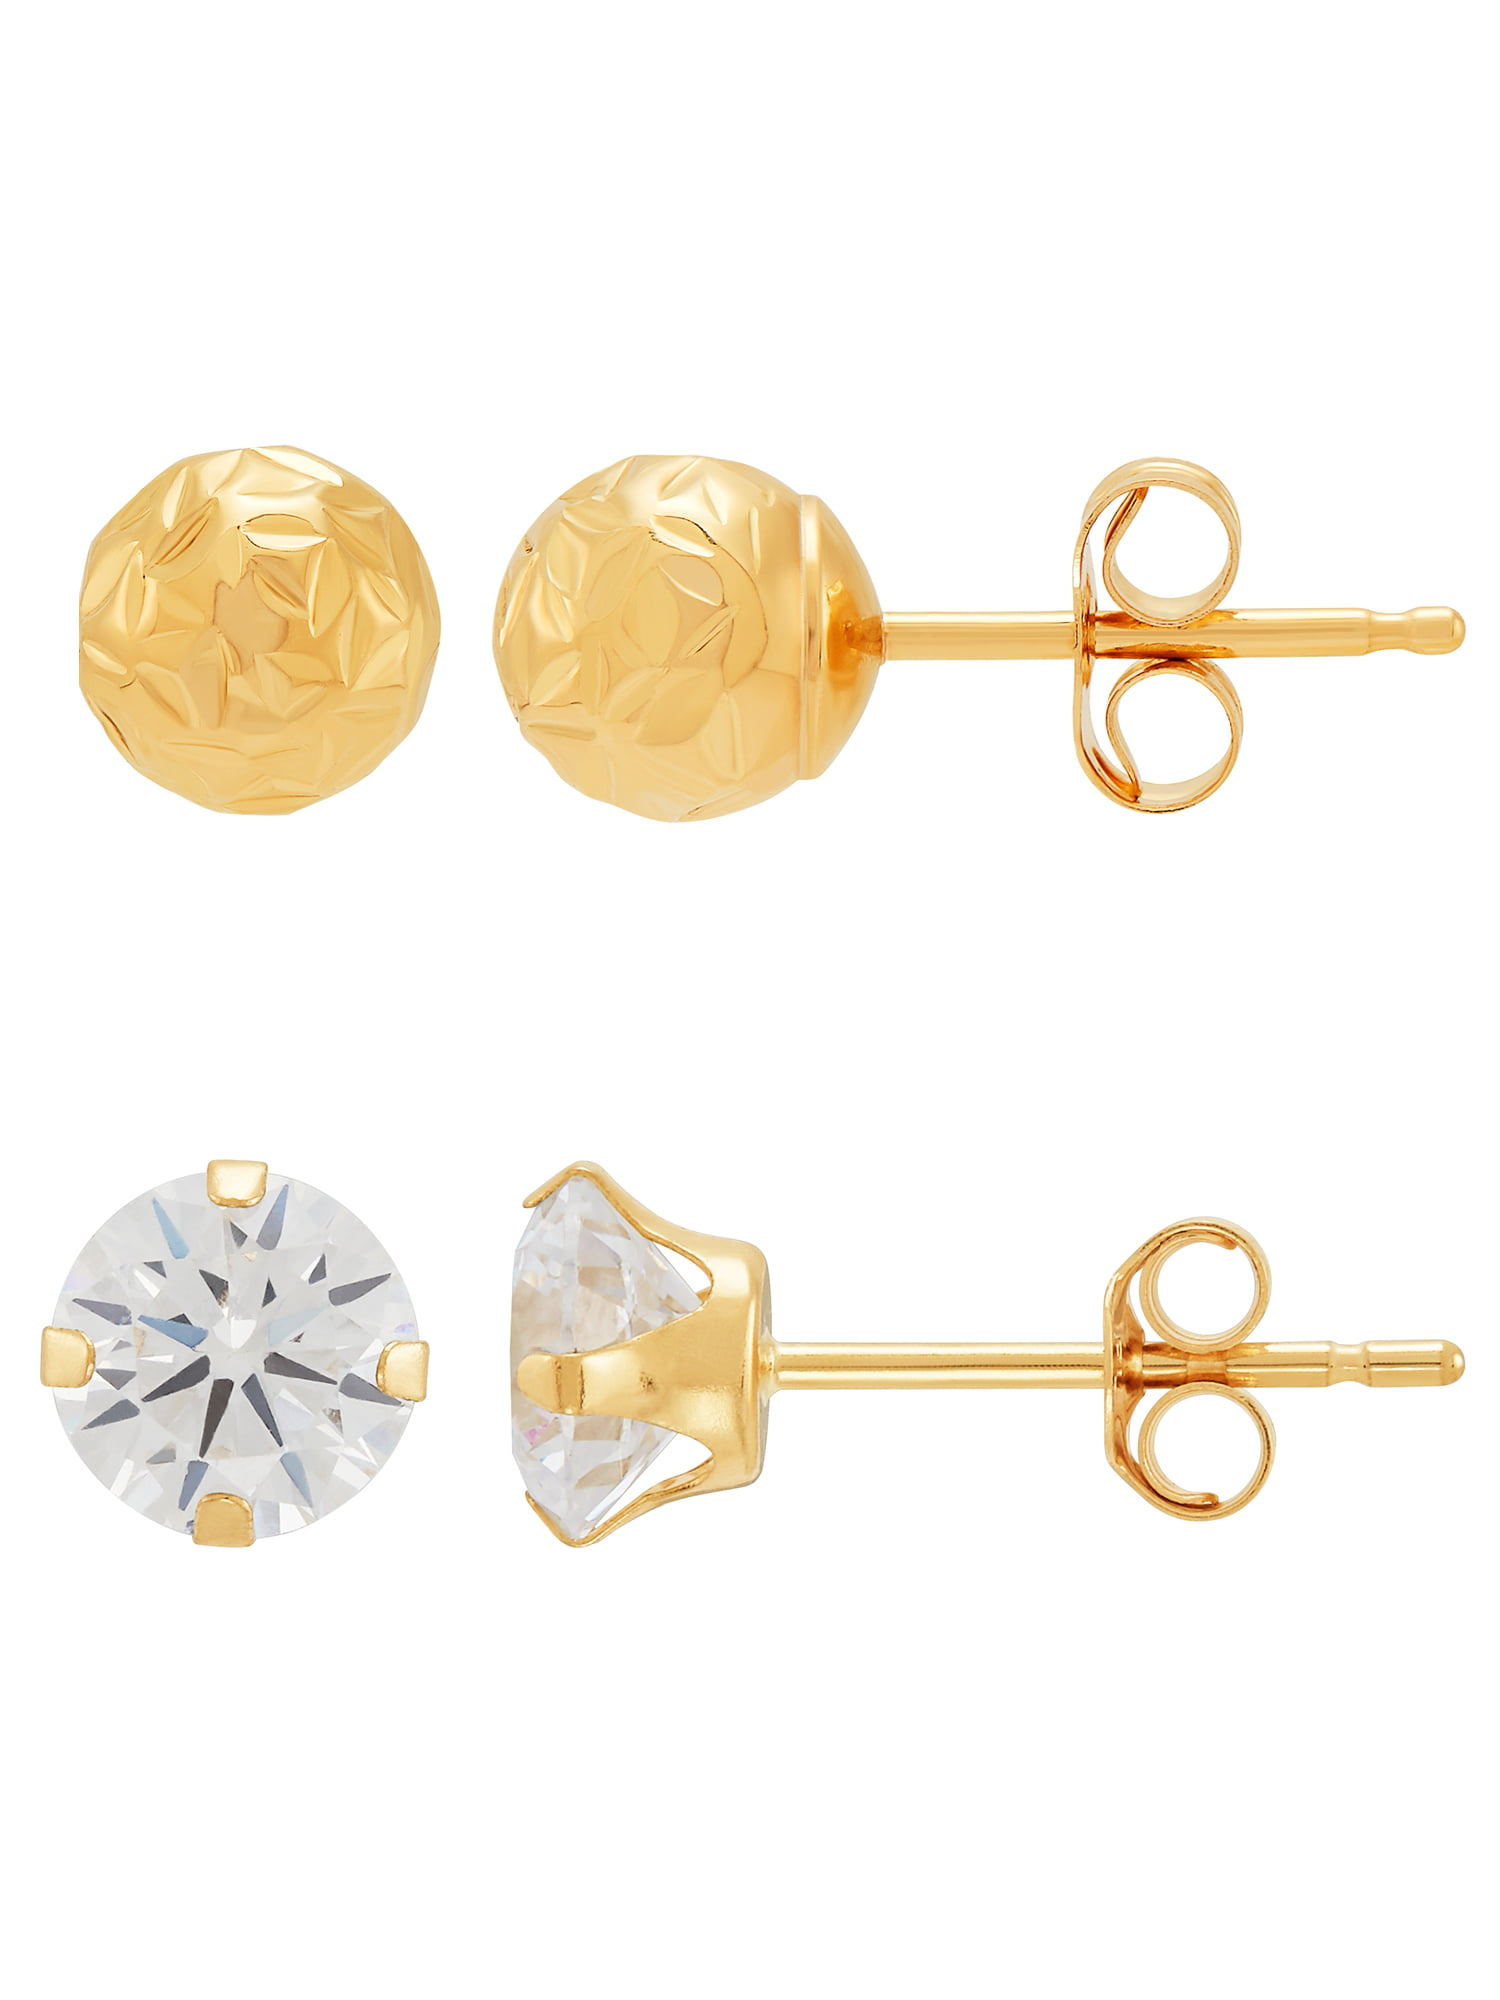 10k Yellow Gold Round CZ Stud Earring for Women and Girls